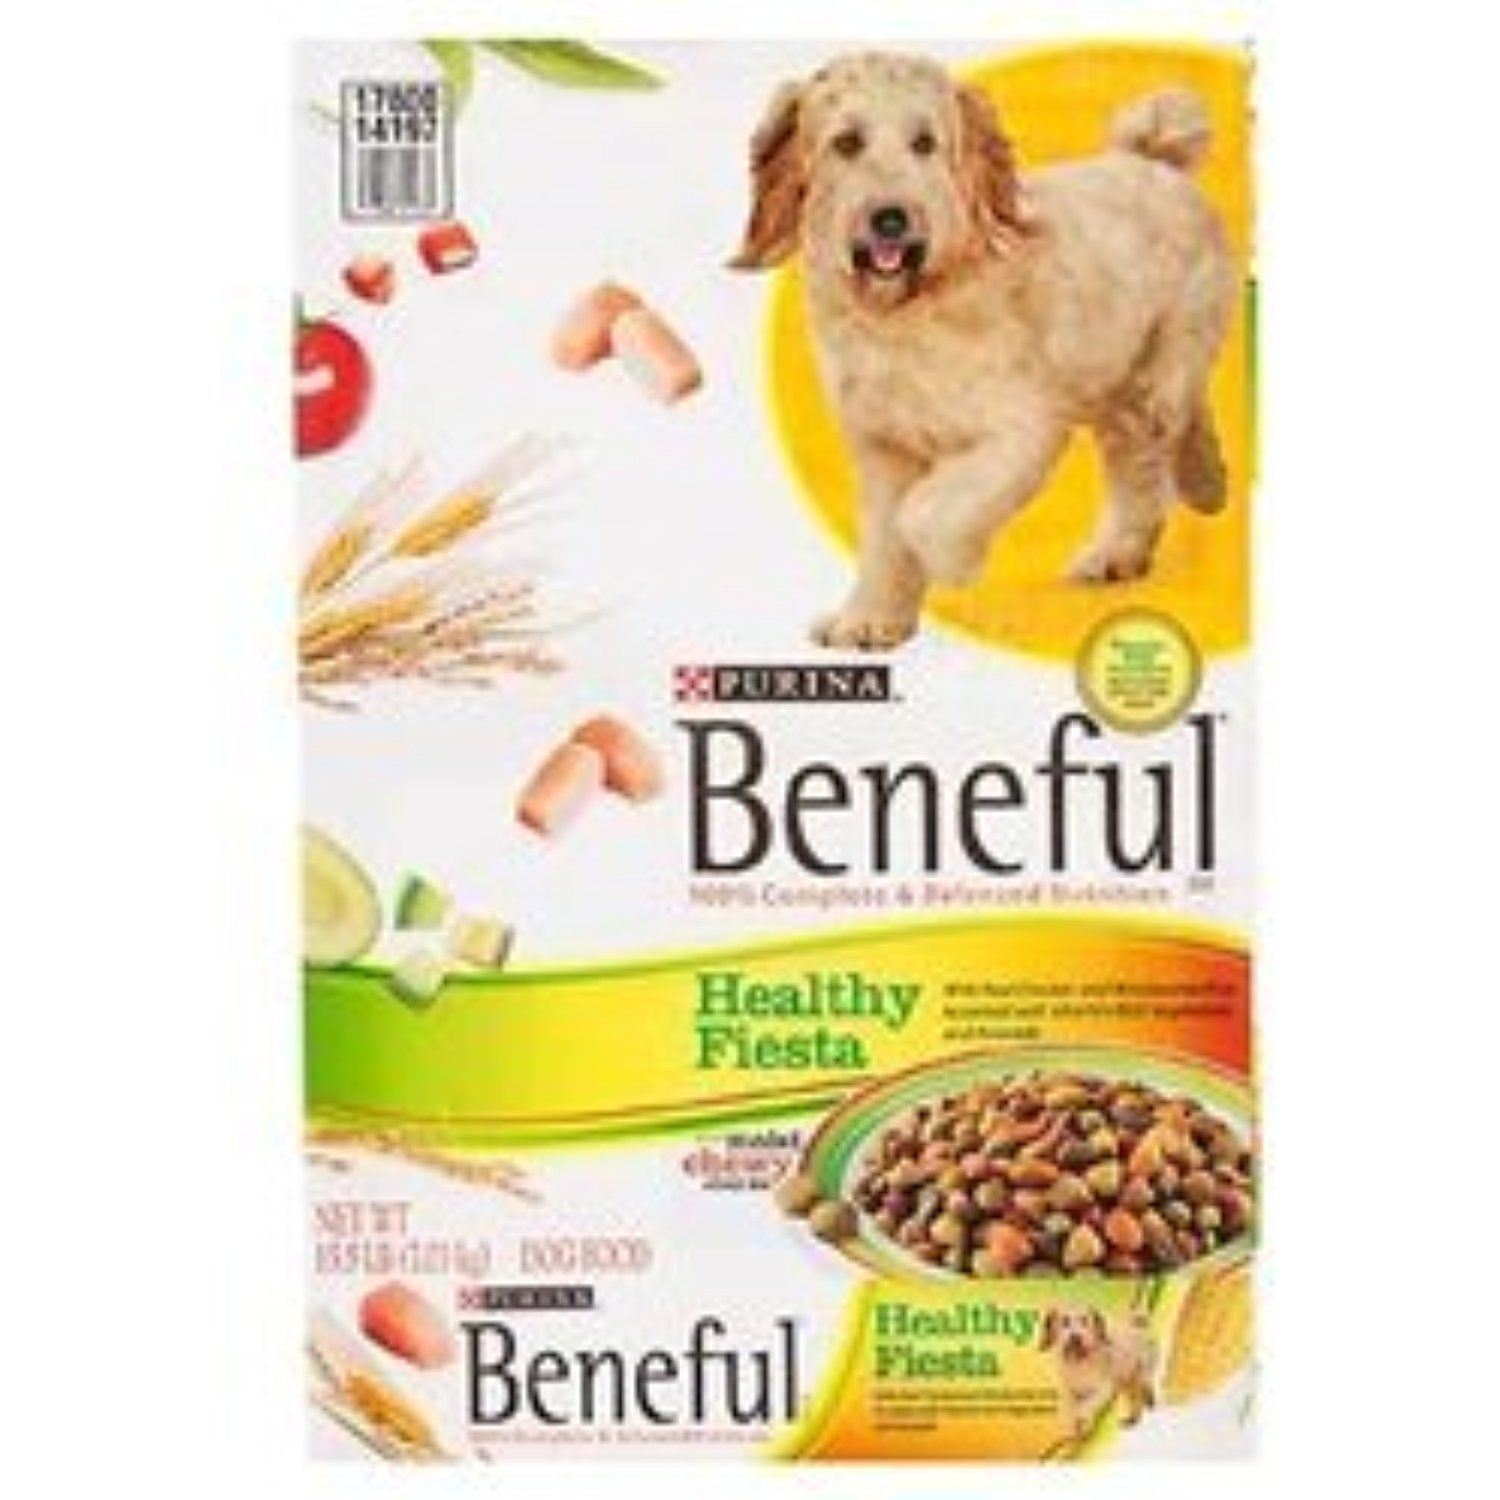 Beneful Dog Food Dry 15 5 Lb Pack Of 4 You Can Read More